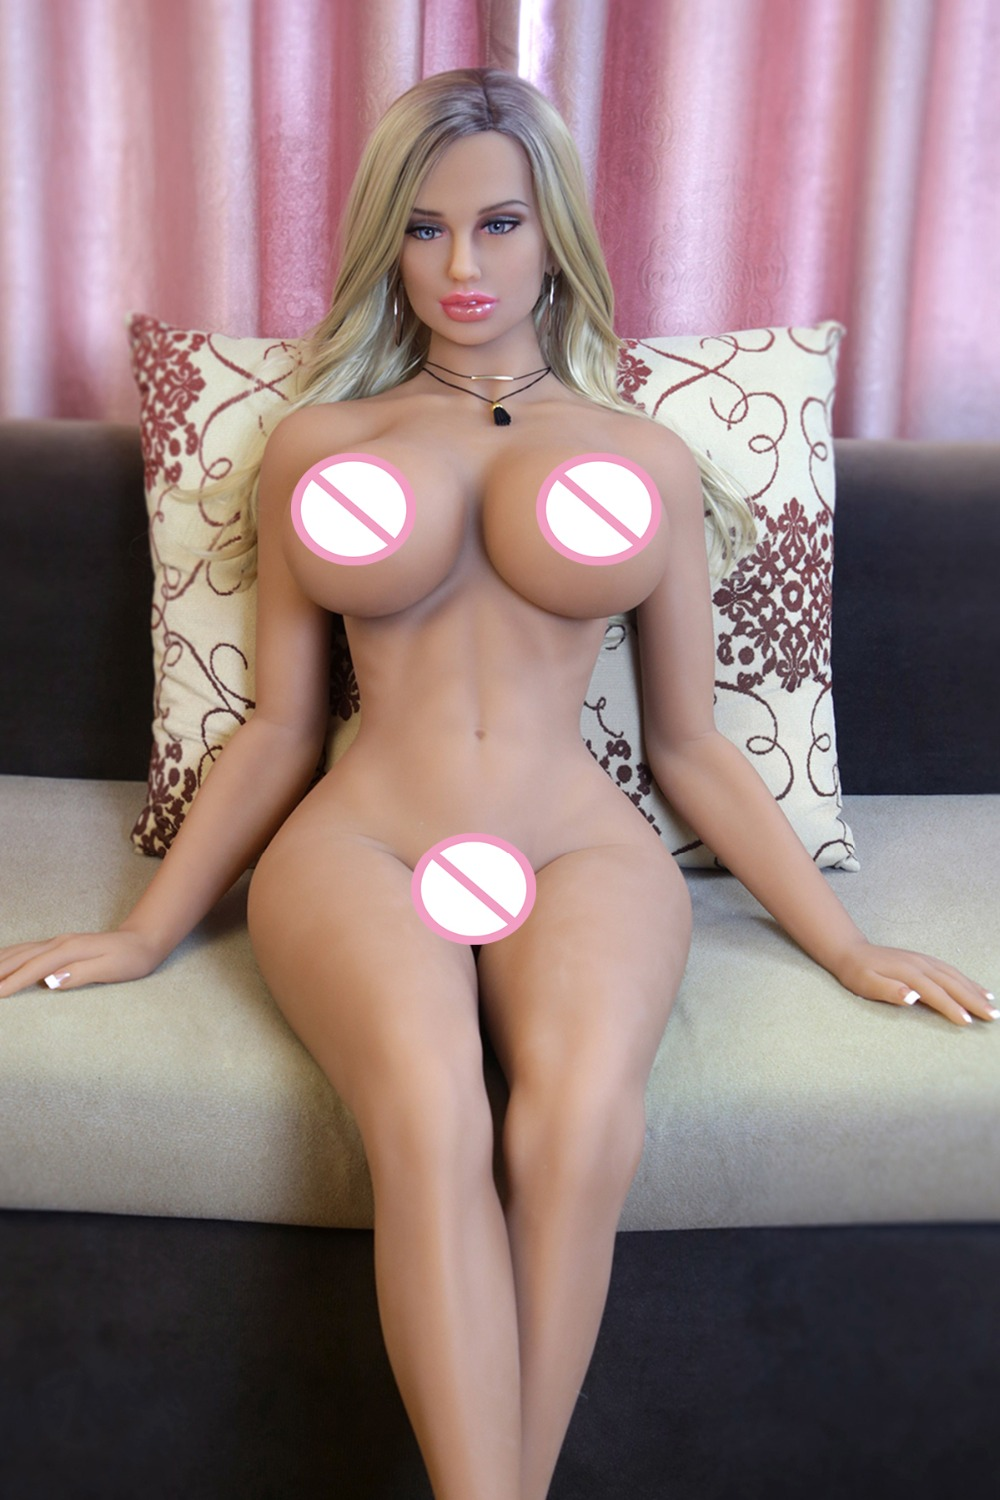 161cm big ass real silicone sex doll full body lifelike love robot doll realistic oral vagina pussy anal sex for male real dolls 7